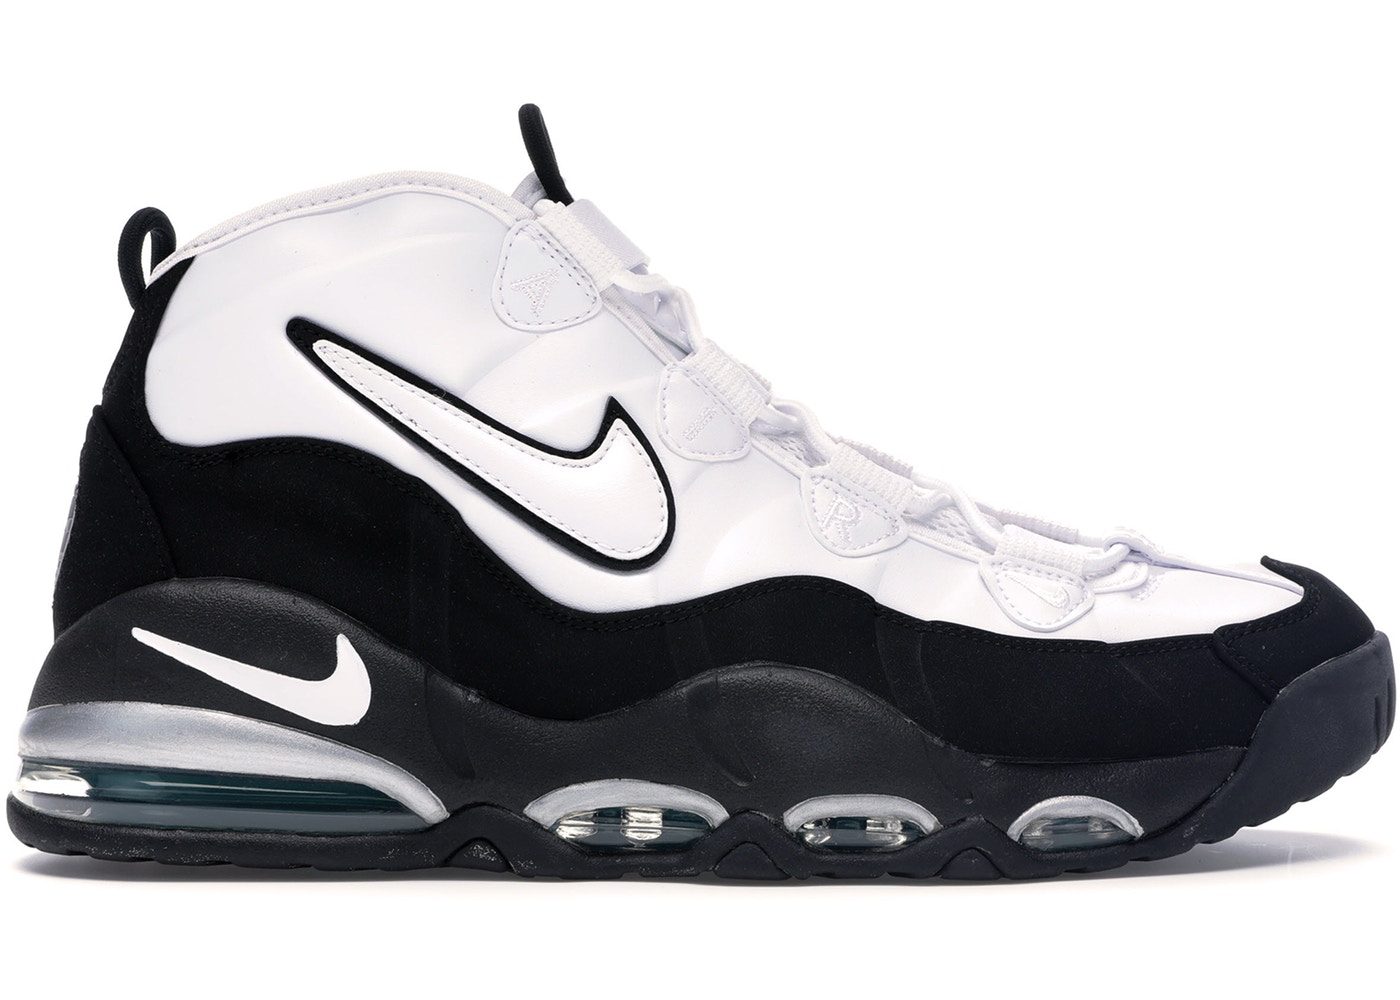 Nike-Air-Max-Uptempo-95-White-Black-Teal-2015-Product.jpg